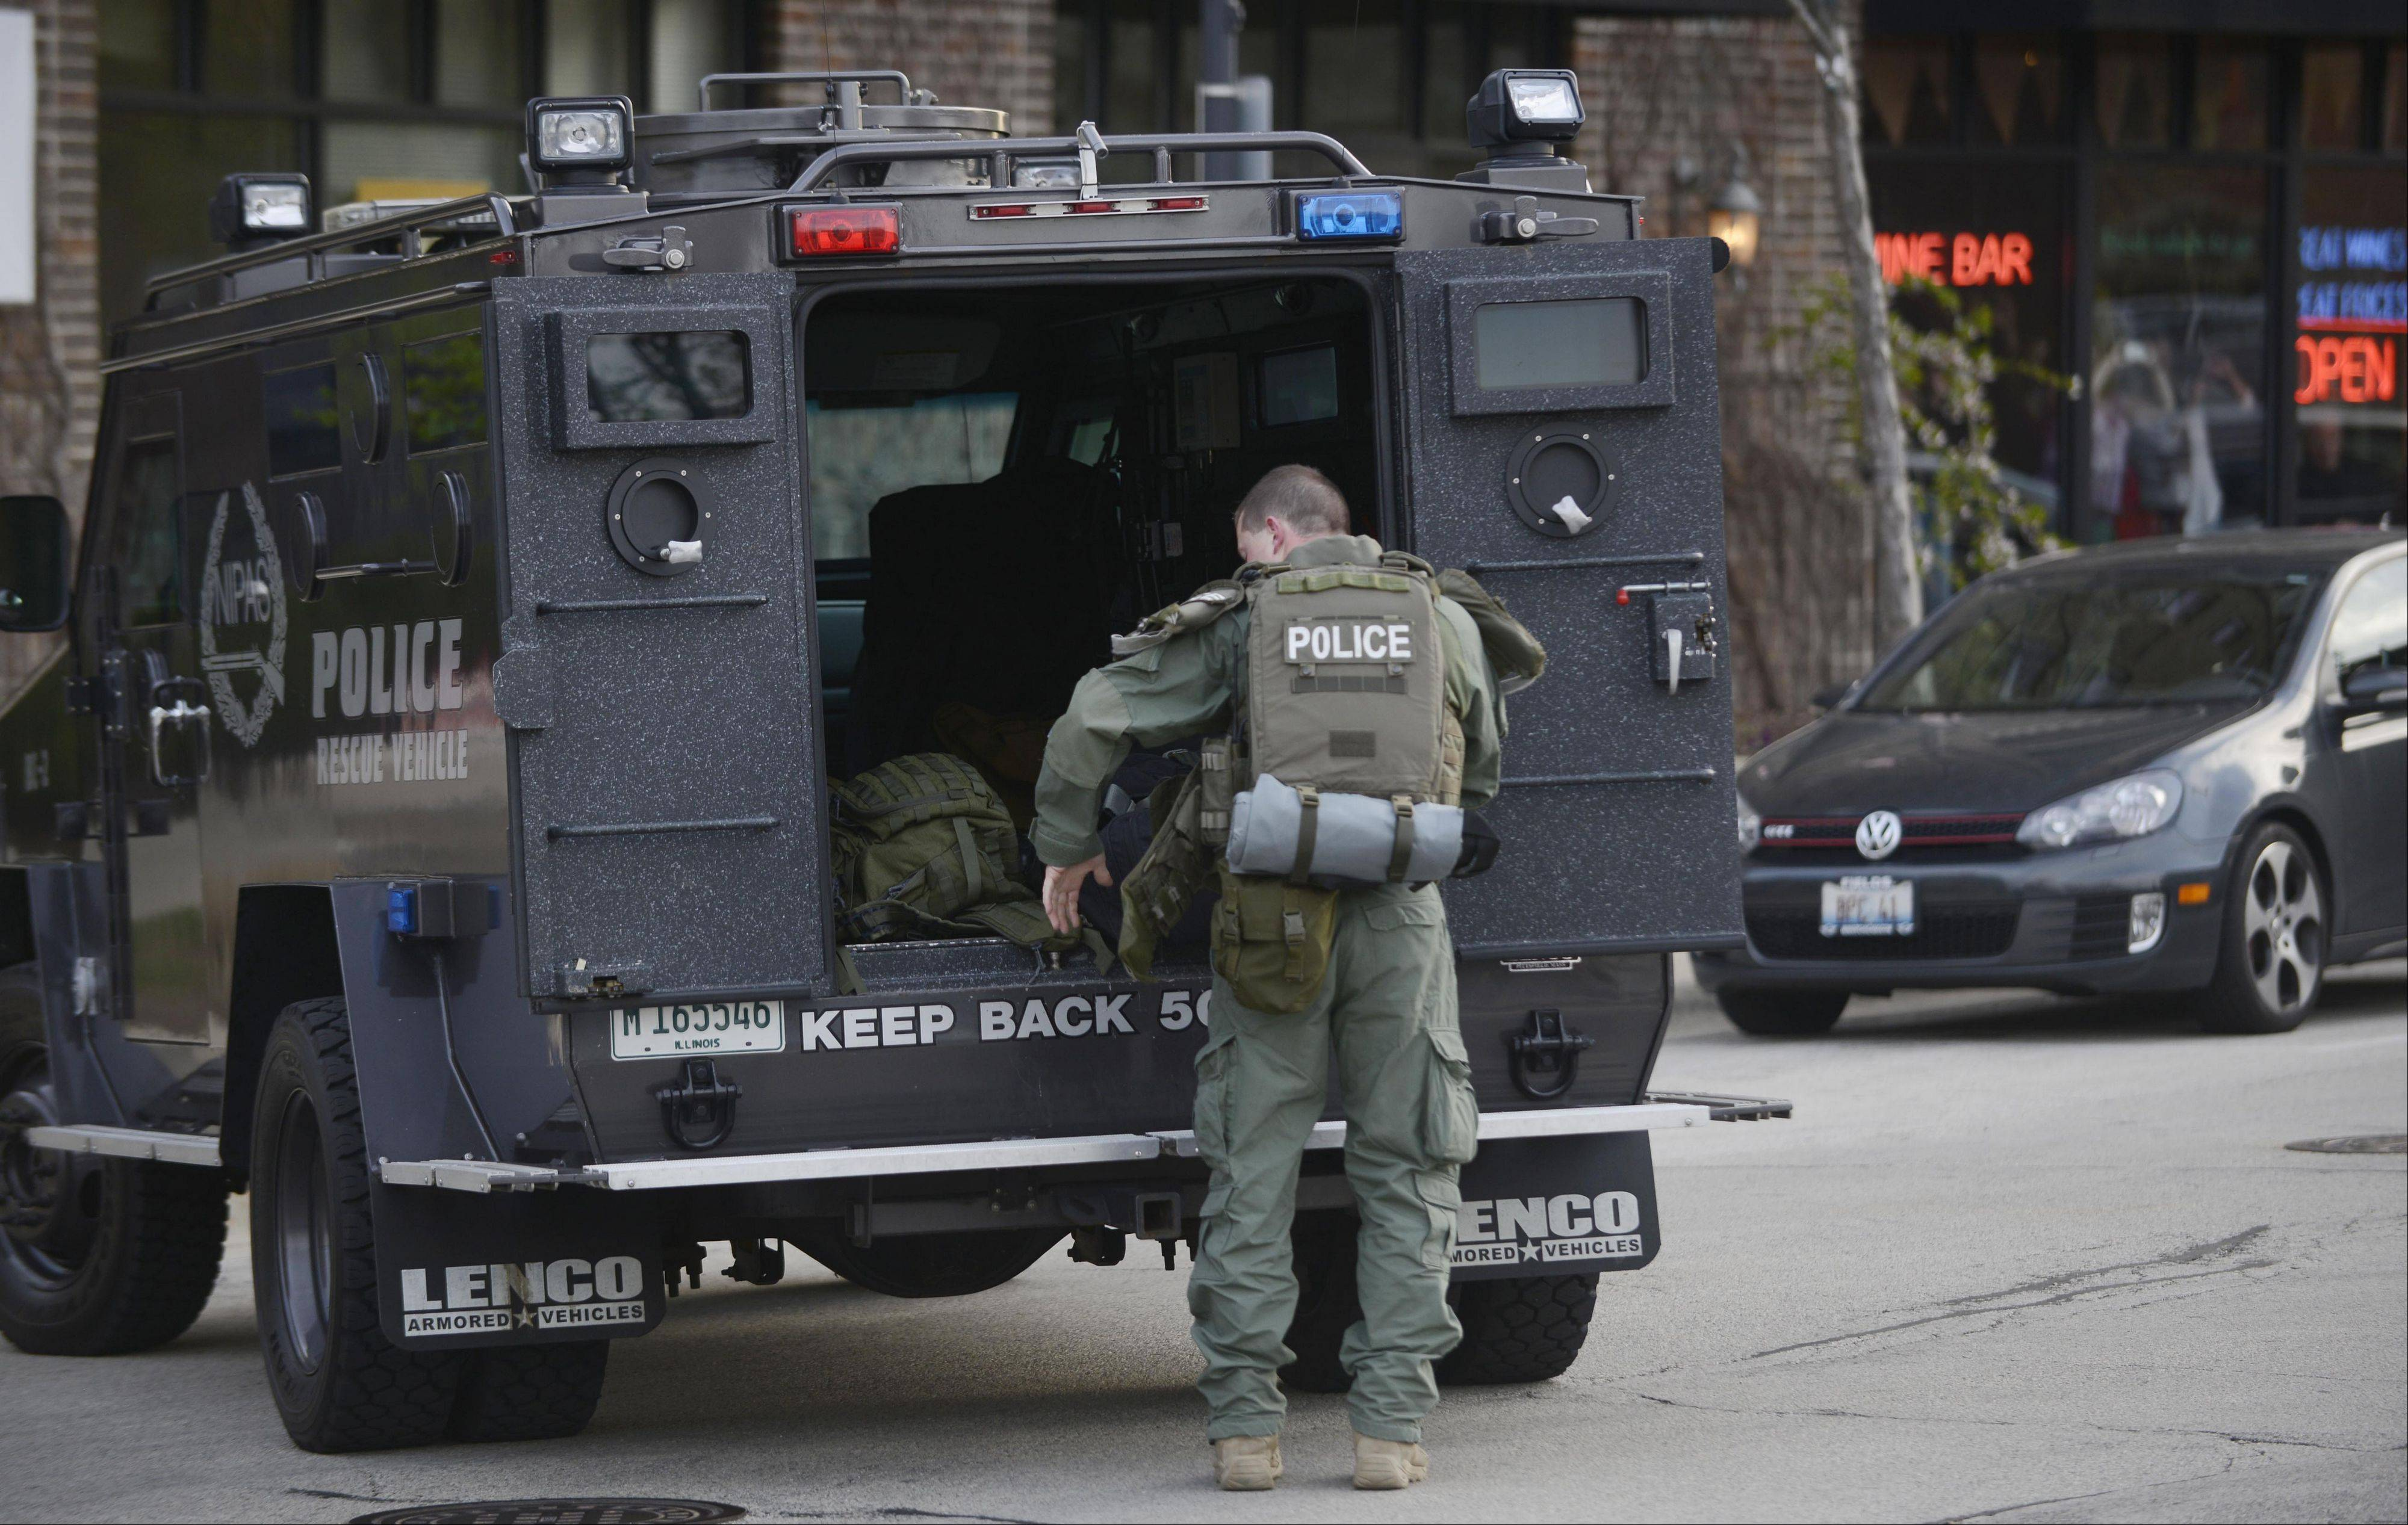 An officer equips himself at the back of an armored police vehicle during the May 4 police standoff in Arlington Heights.